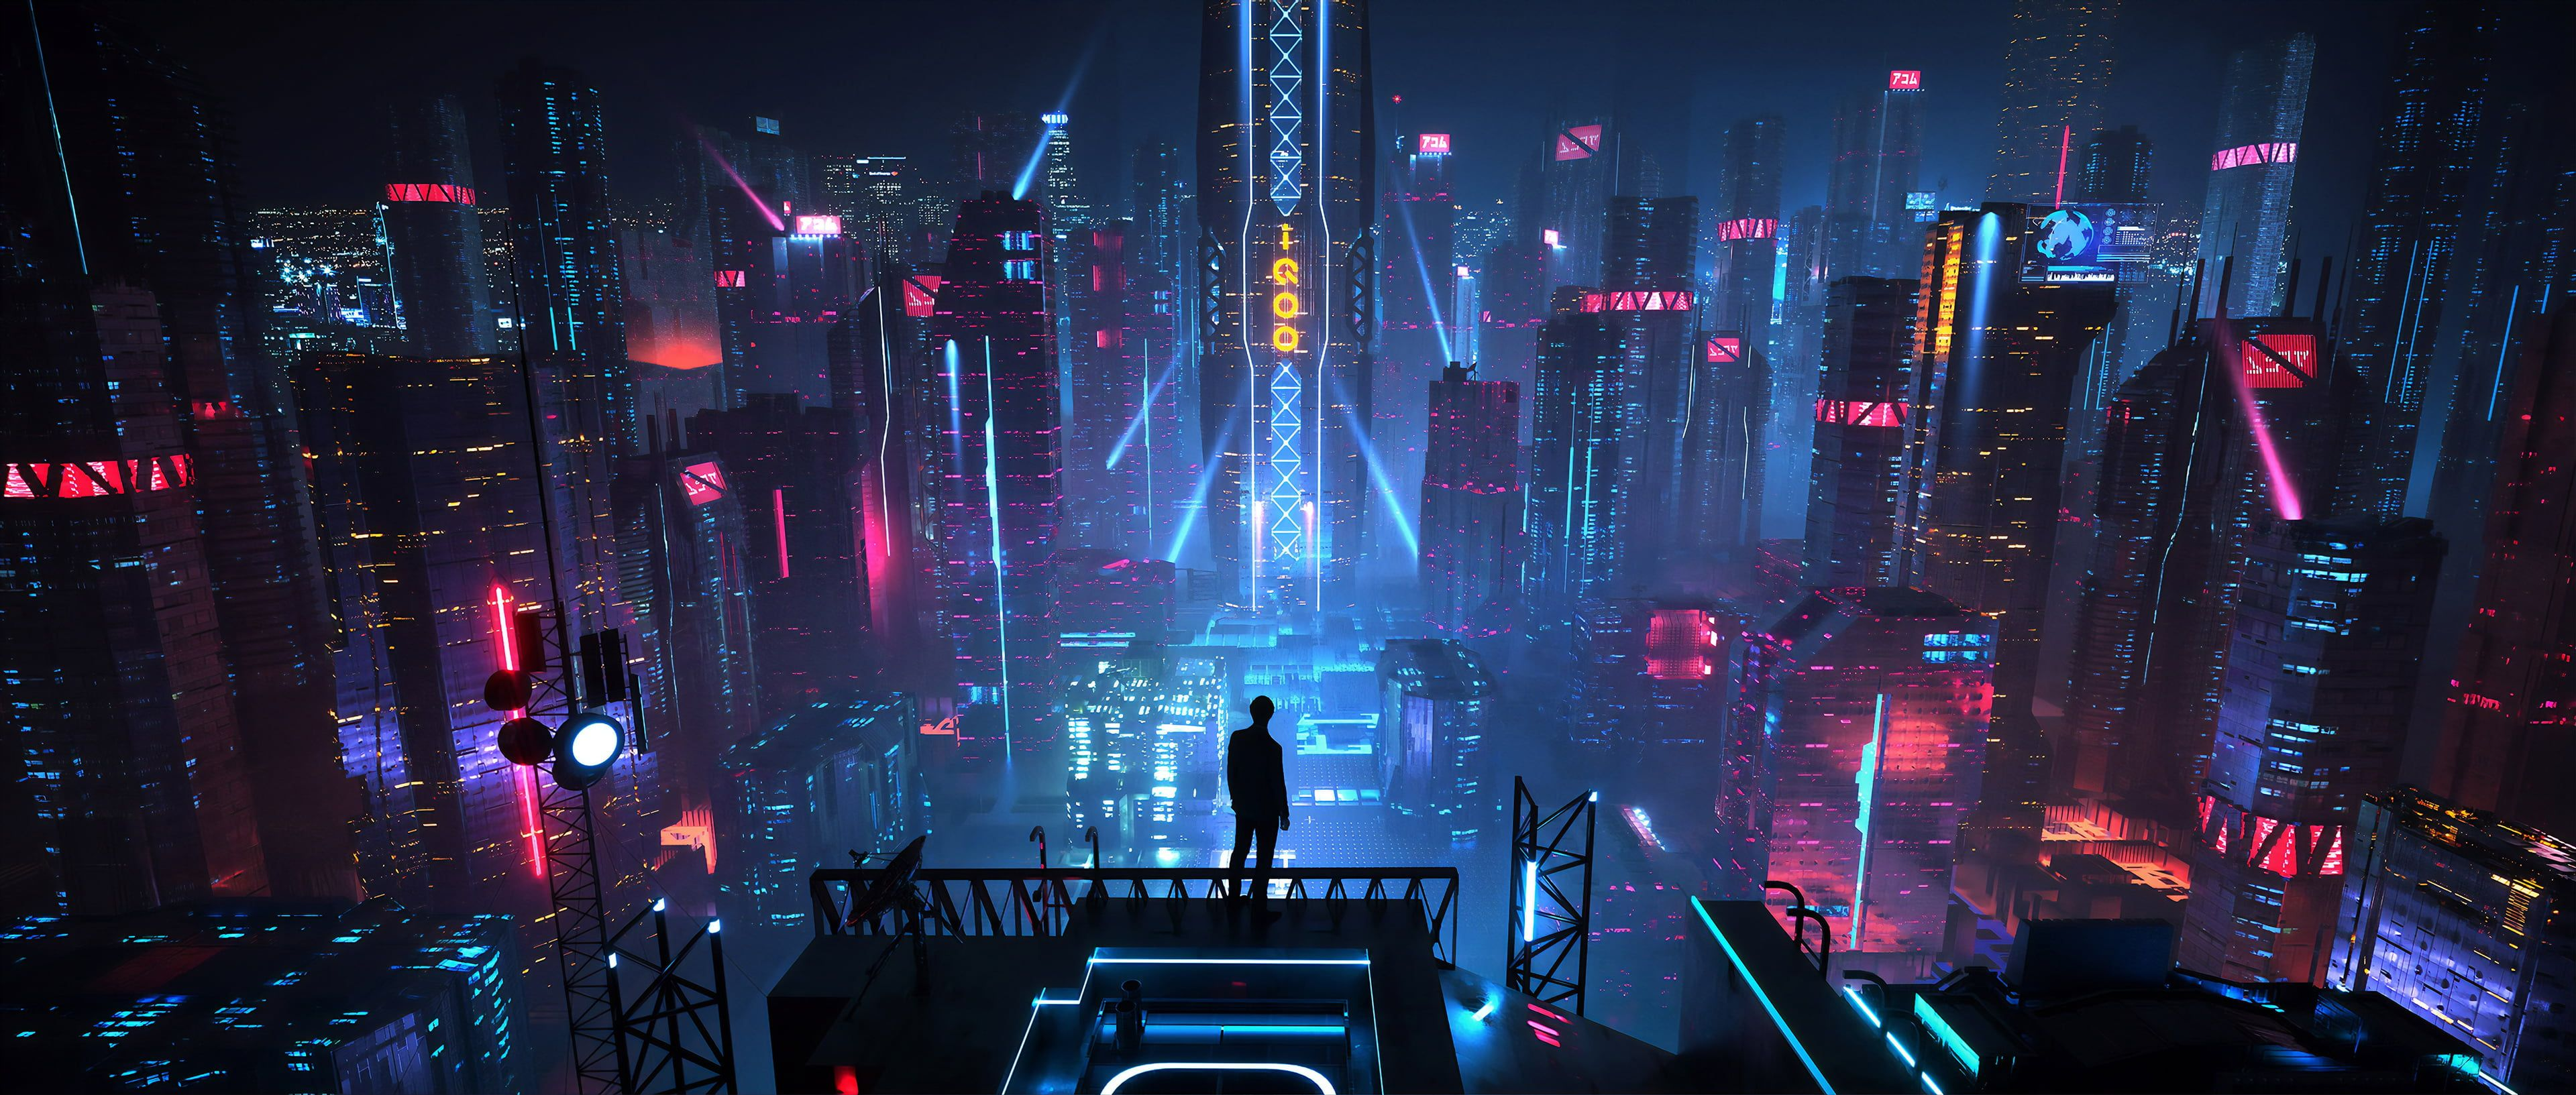 Digital Art Men City Futuristic Night Neon Science Fiction Futuristic City Cyberpunk Xuteng Pan Environmen In 2020 Cyberpunk City City Wallpaper Futuristic City